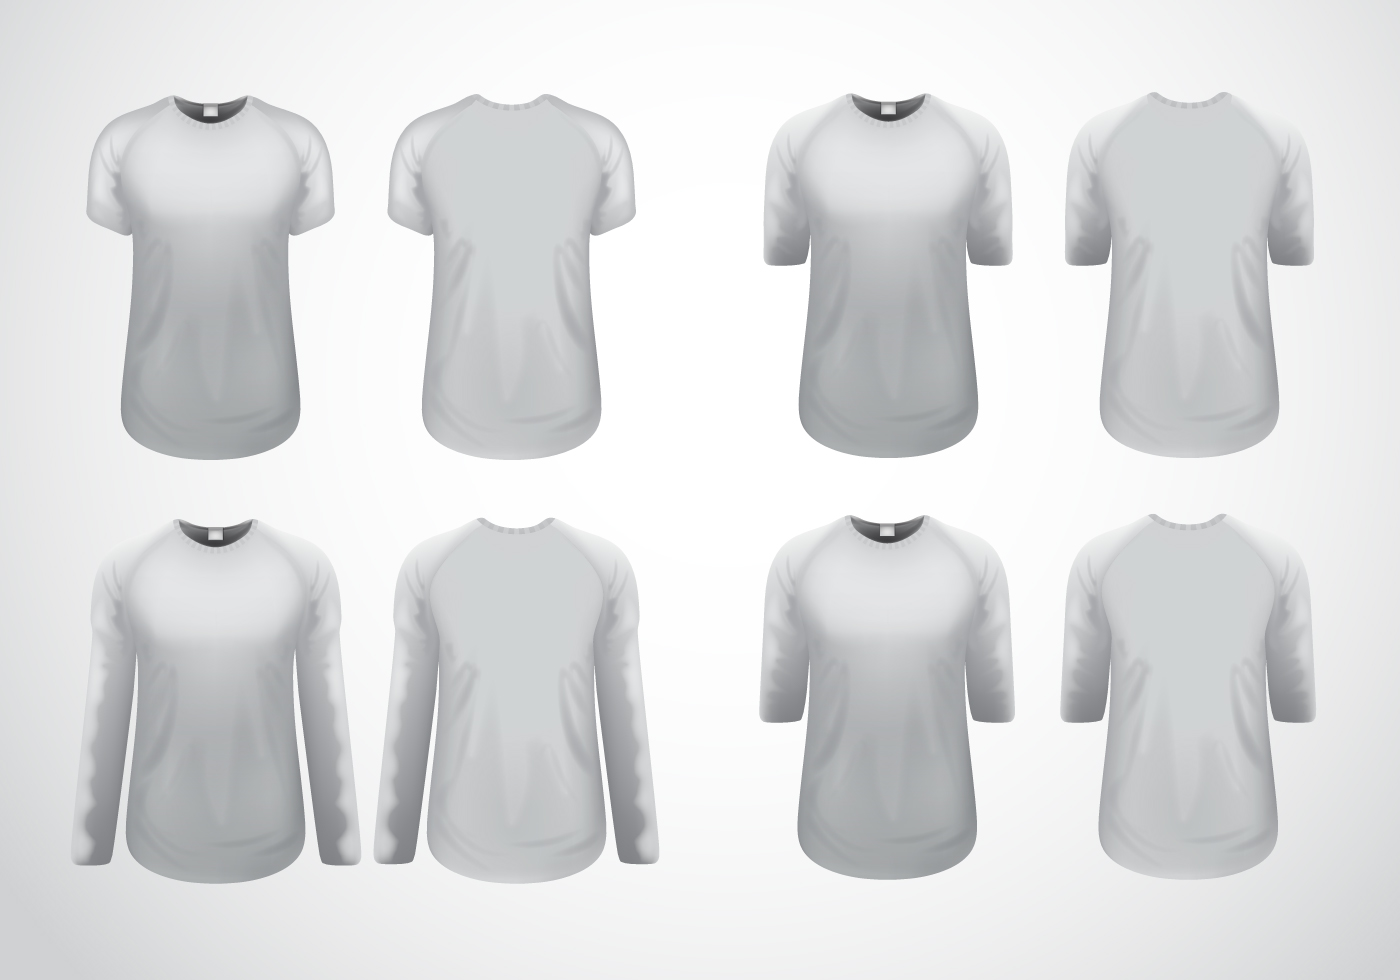 Raglan T-Shirt Template Vector - Download Free Vector Art, Stock ...